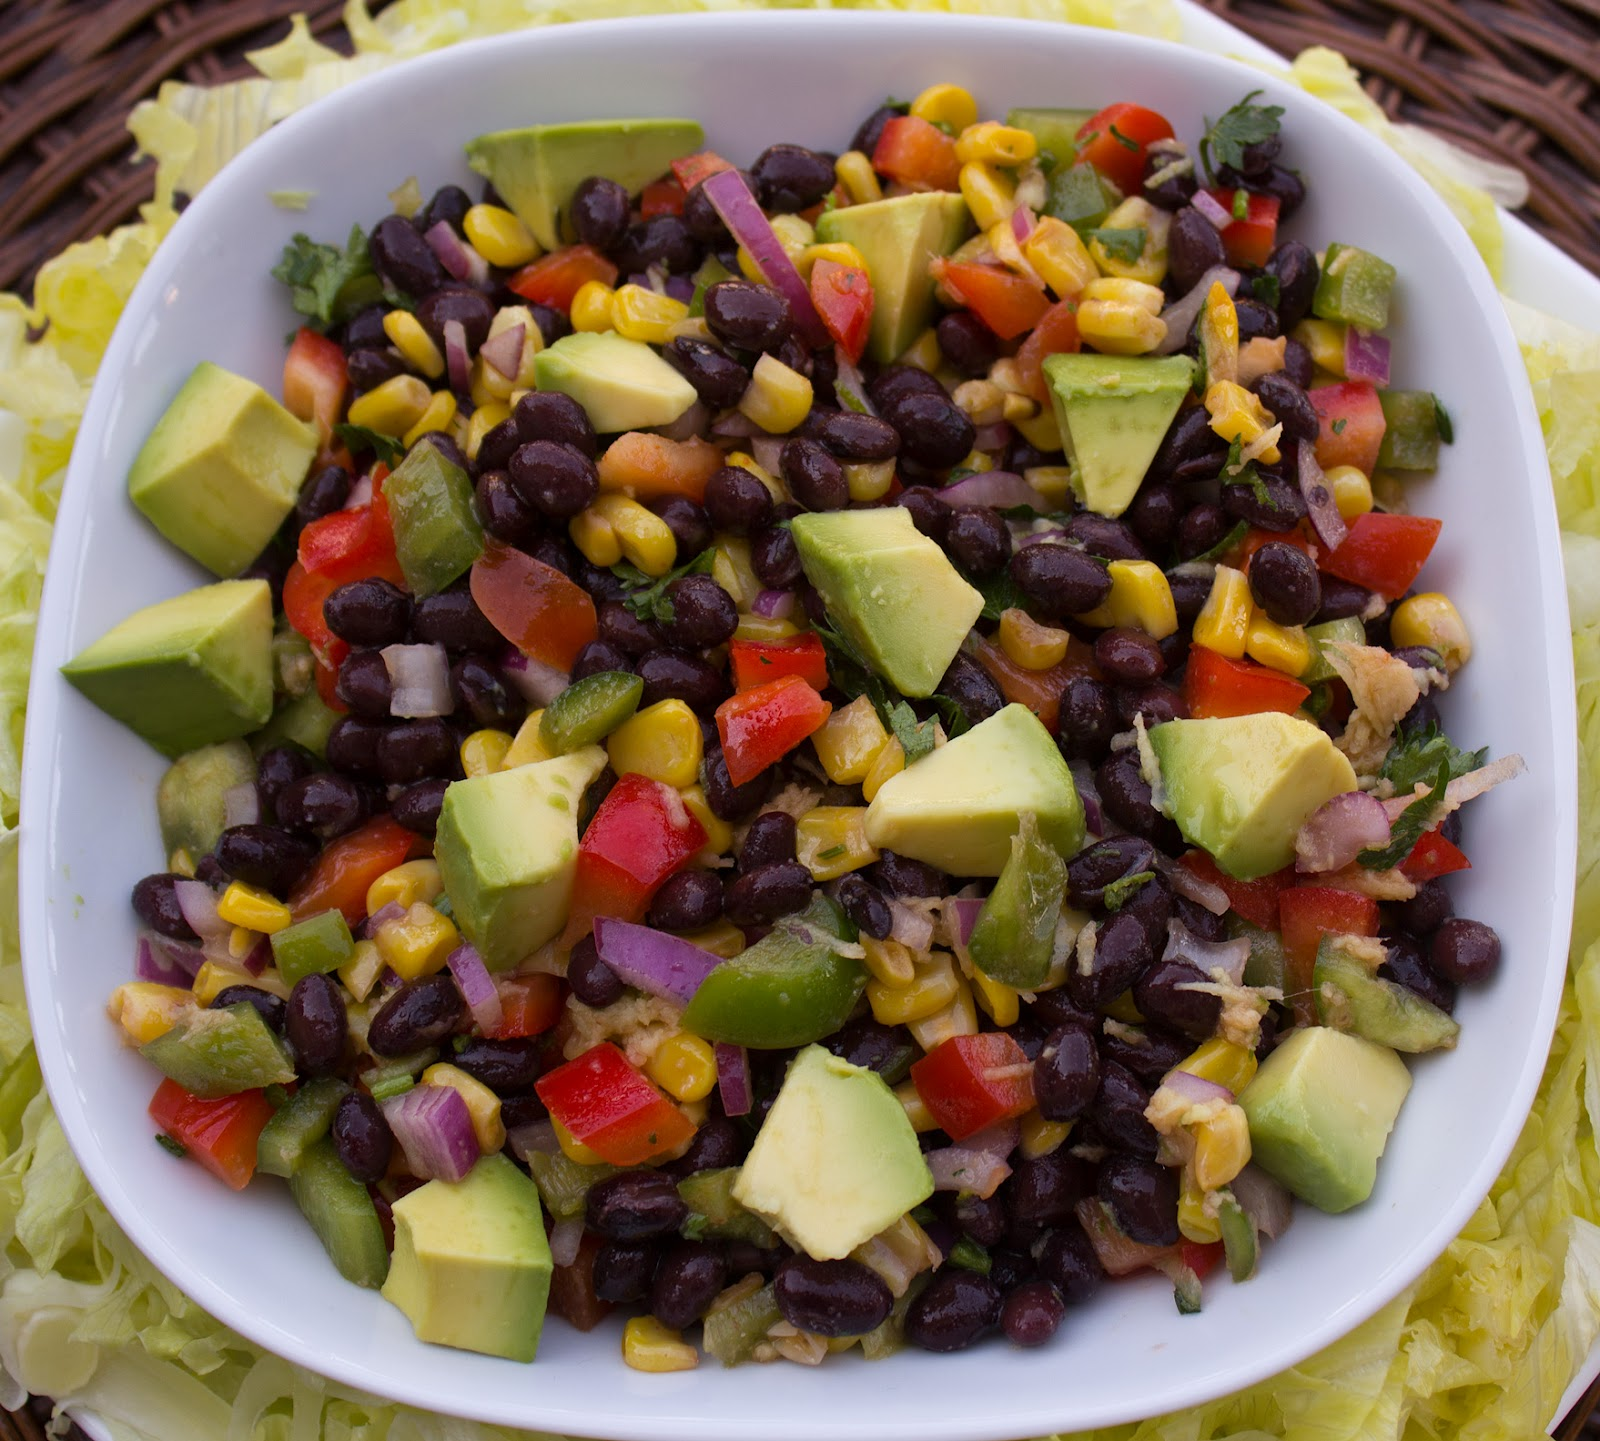 fabulous fridays: Black bean salad with avocado